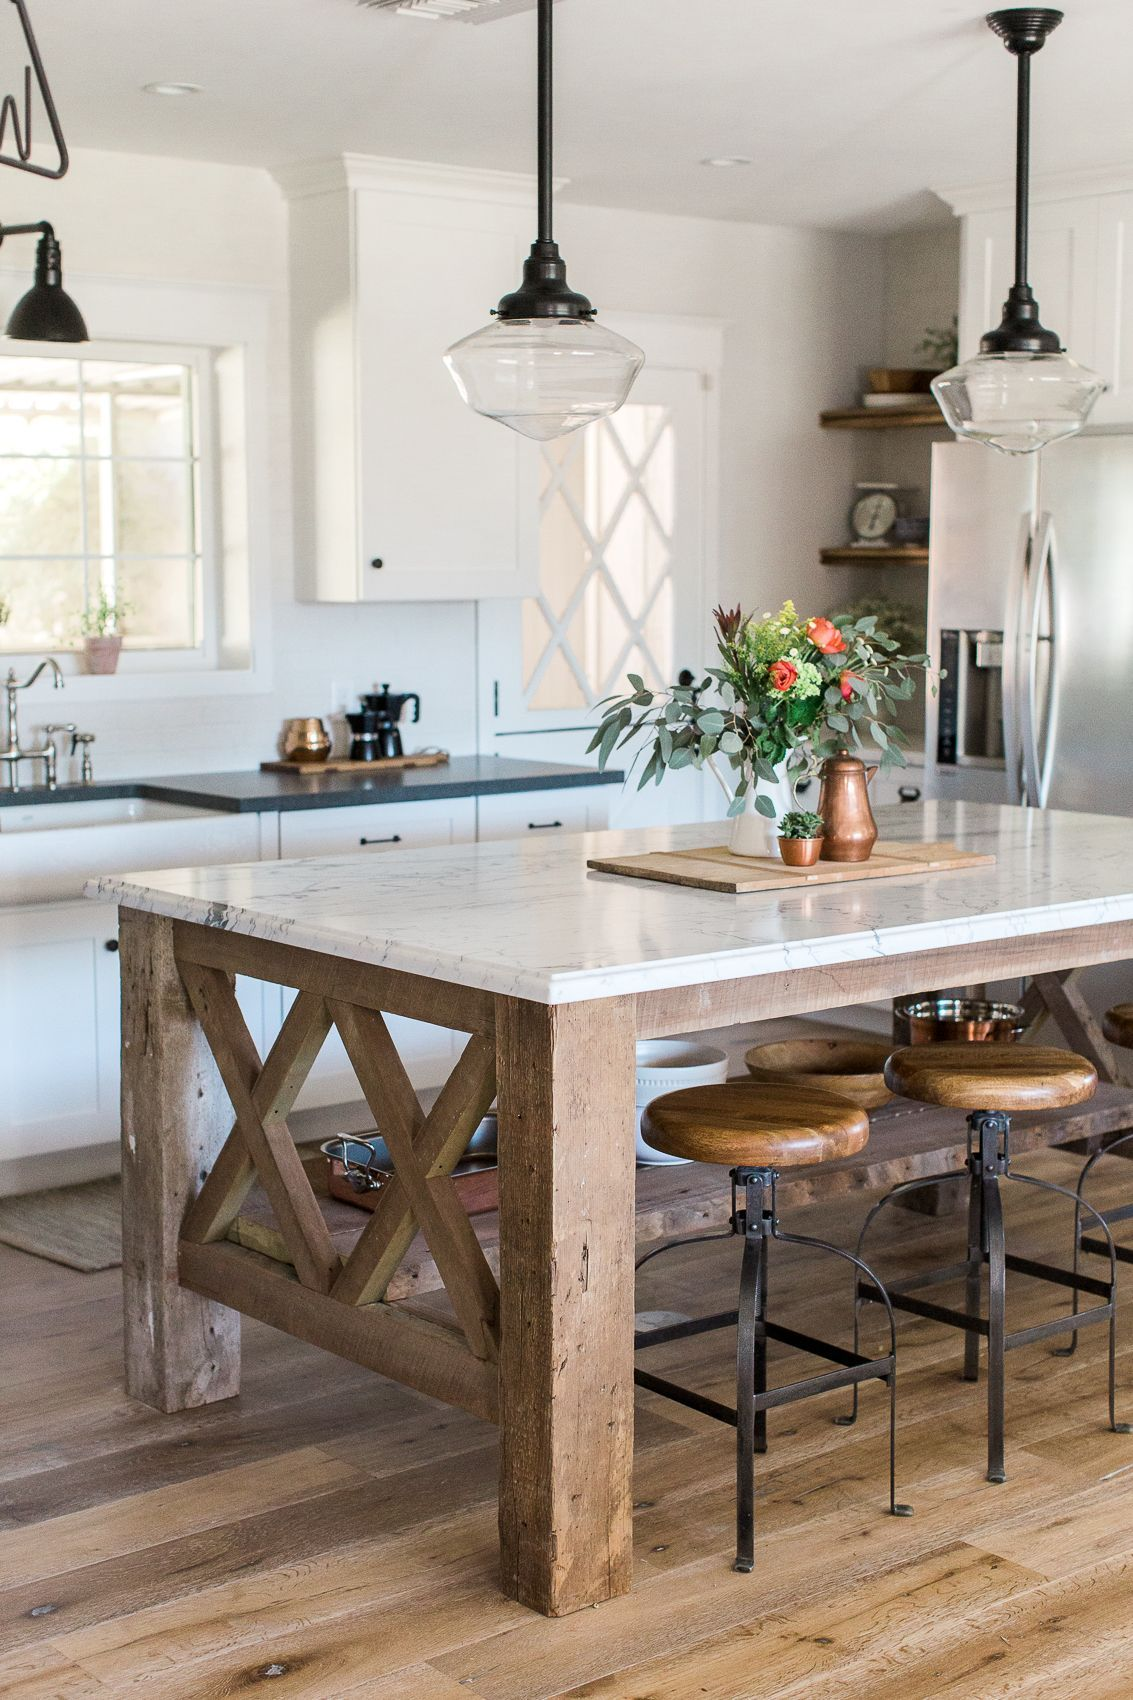 19 Unique Kitchen Island Ideas for Every Space and Budget ...